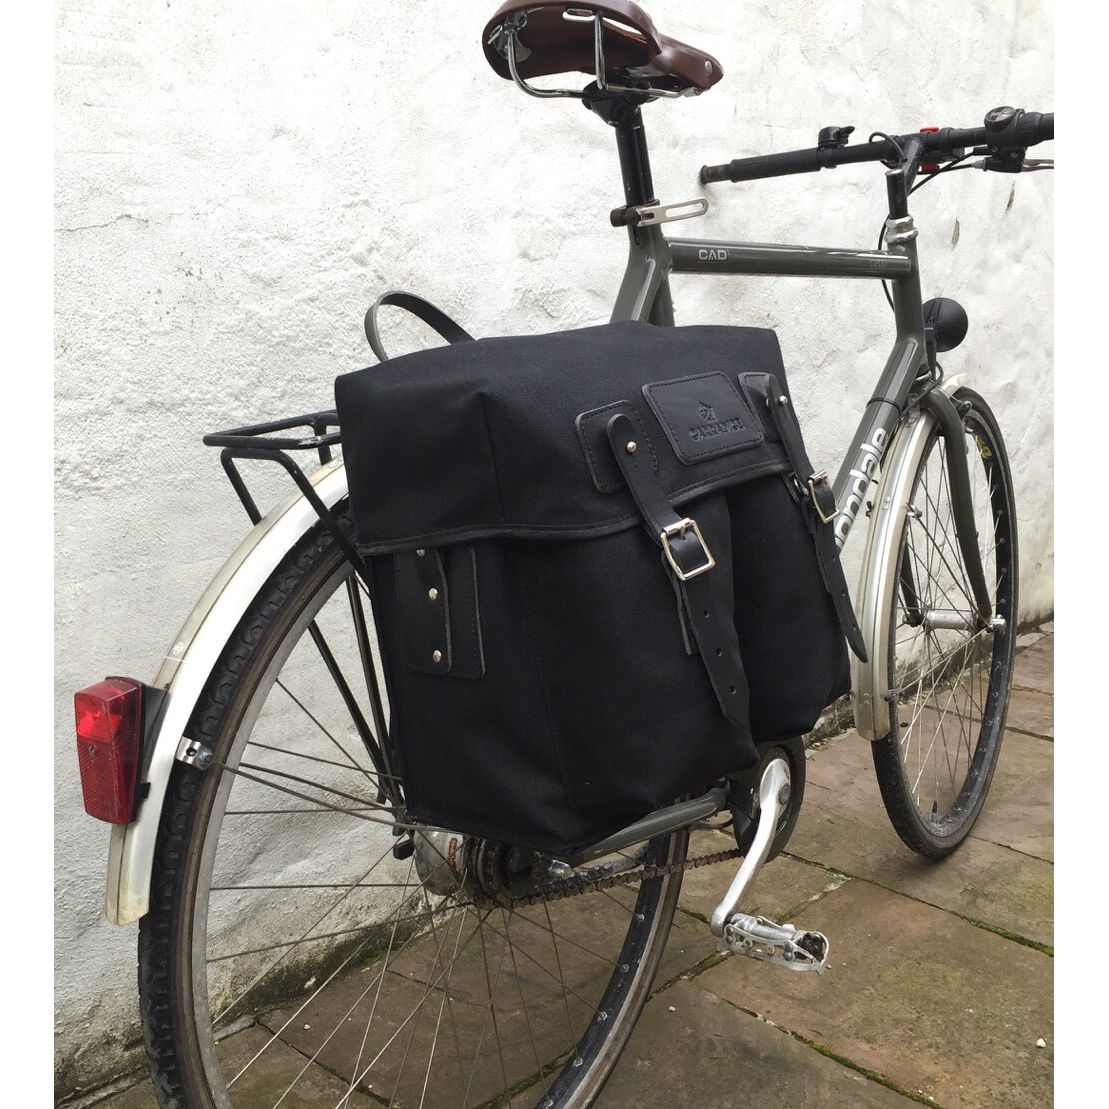 penrith black singles City classics penrith pannier - single £ 13000 the penrith pannier is a strong durable pannier which is 100% waterproof which makes sure all contents stay dry and.